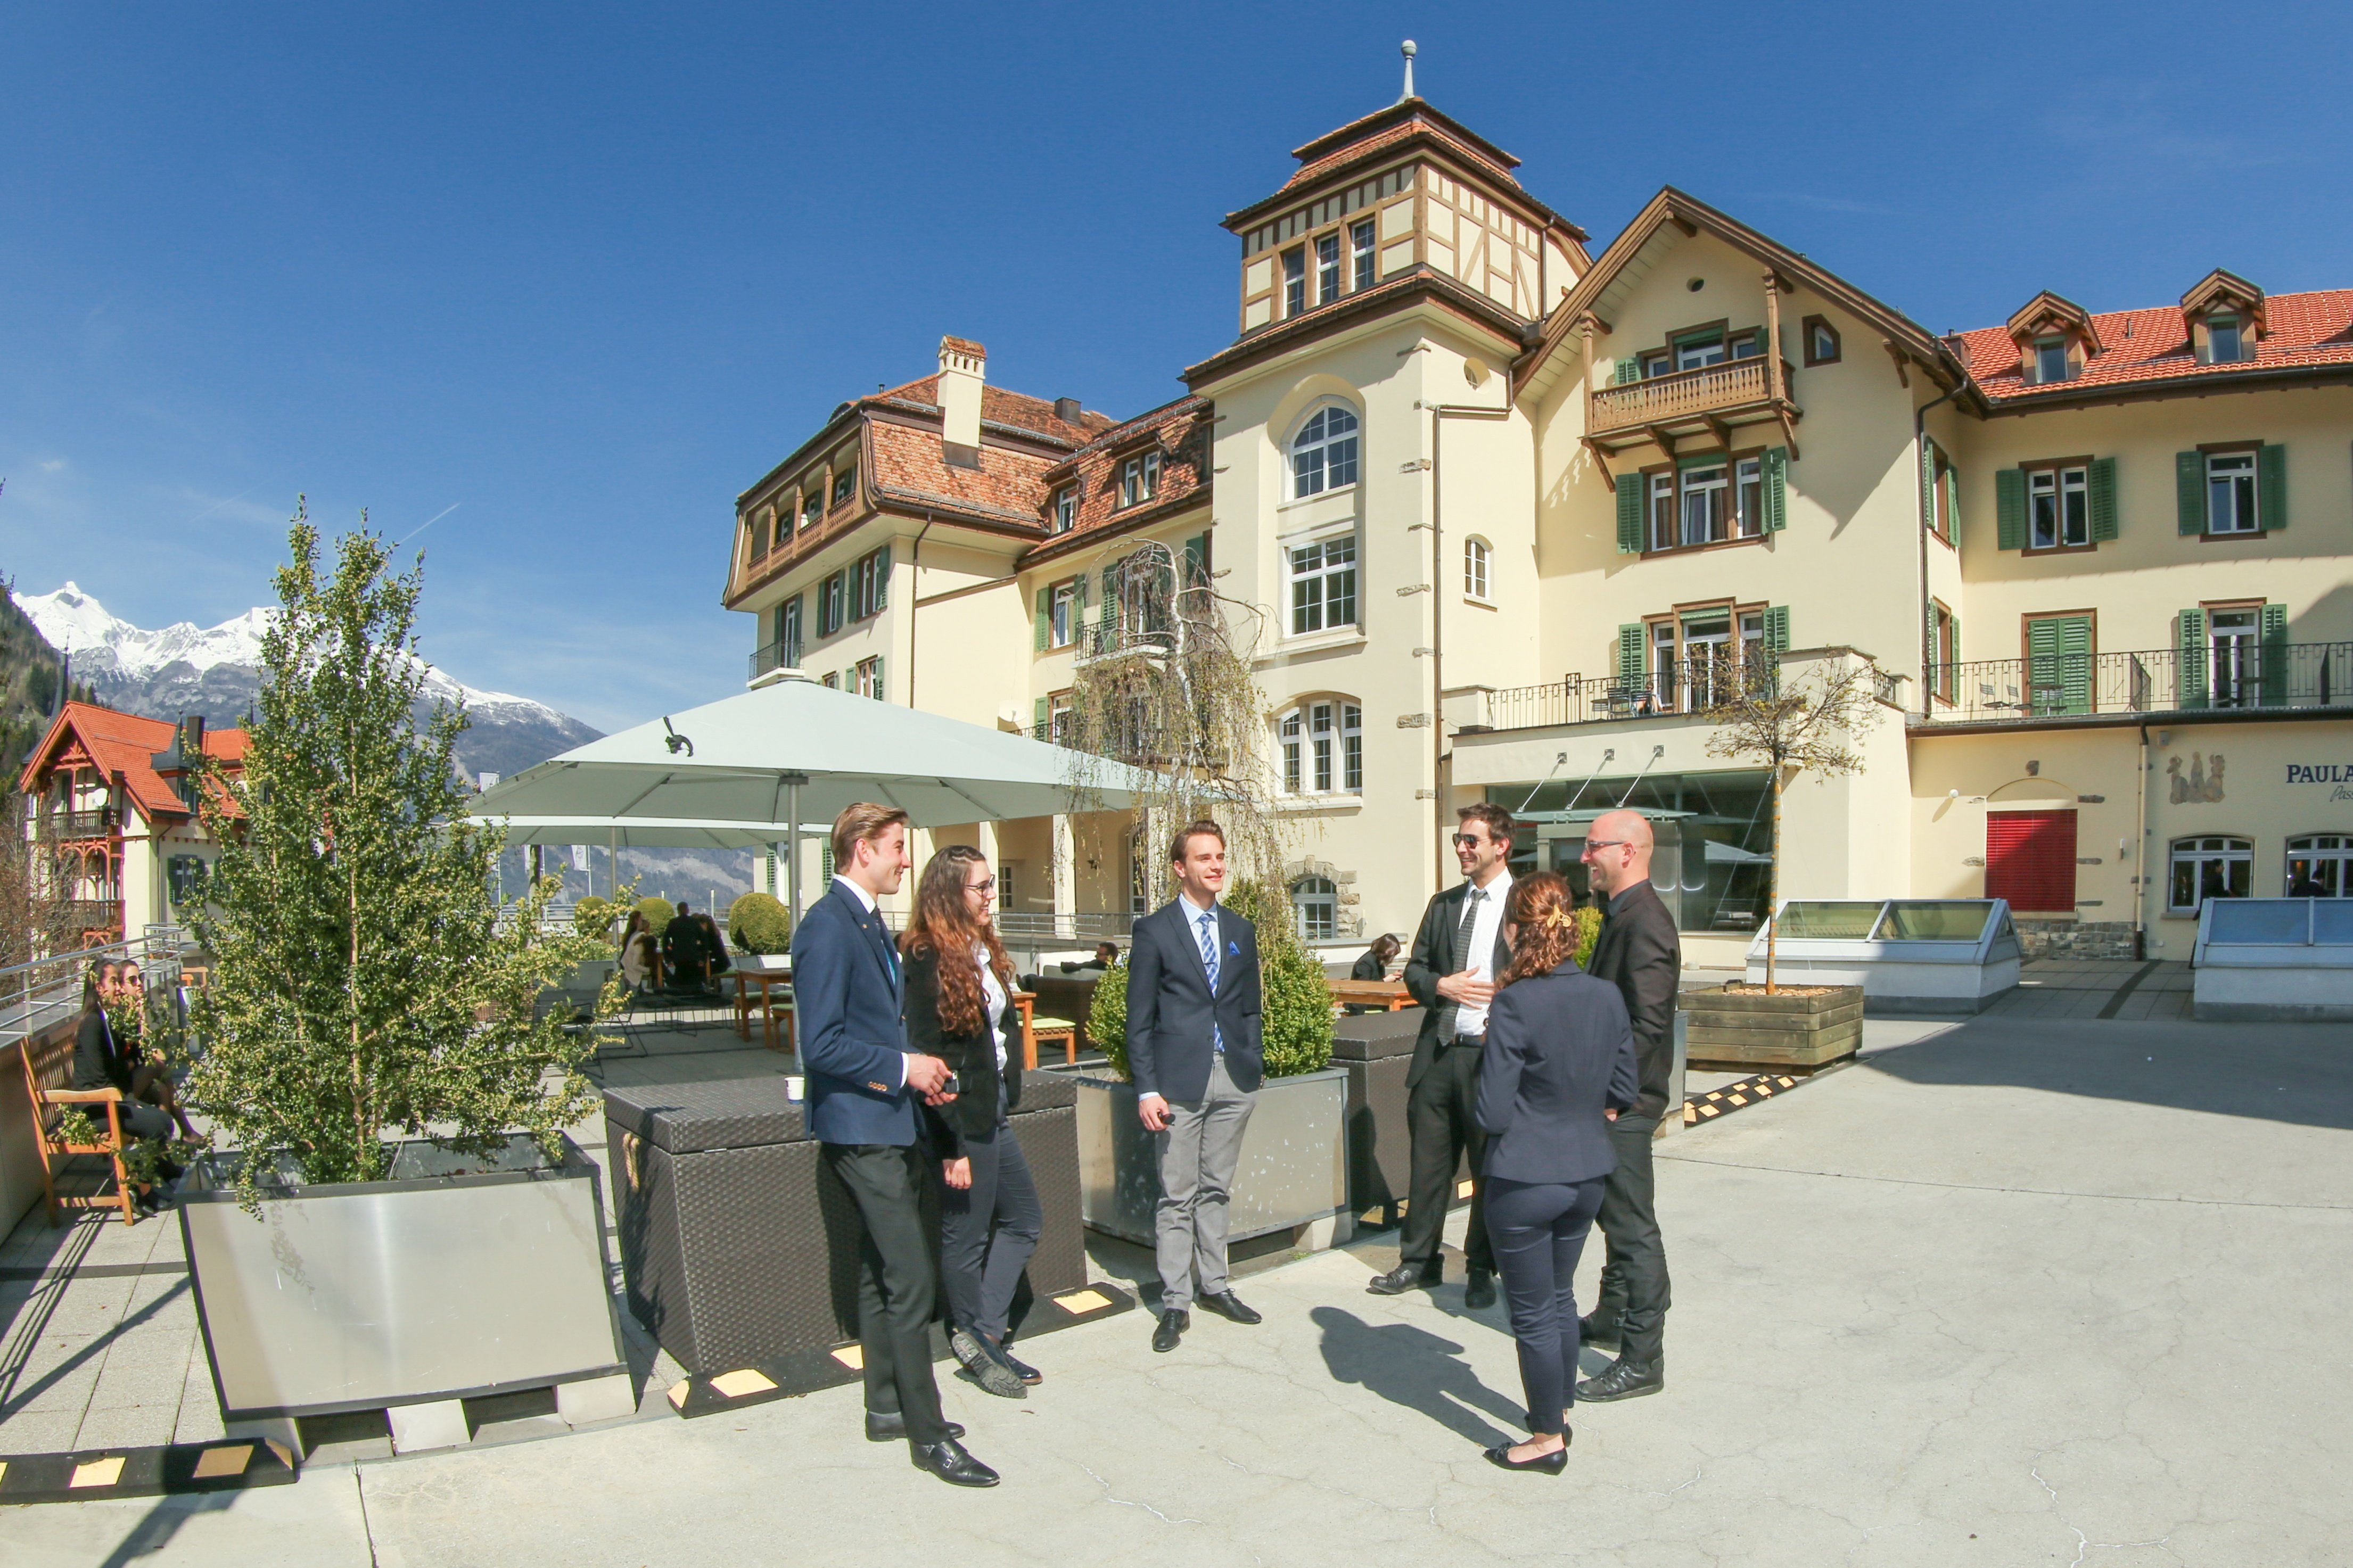 SSTH - Swiss School of Tourism and Hospitality